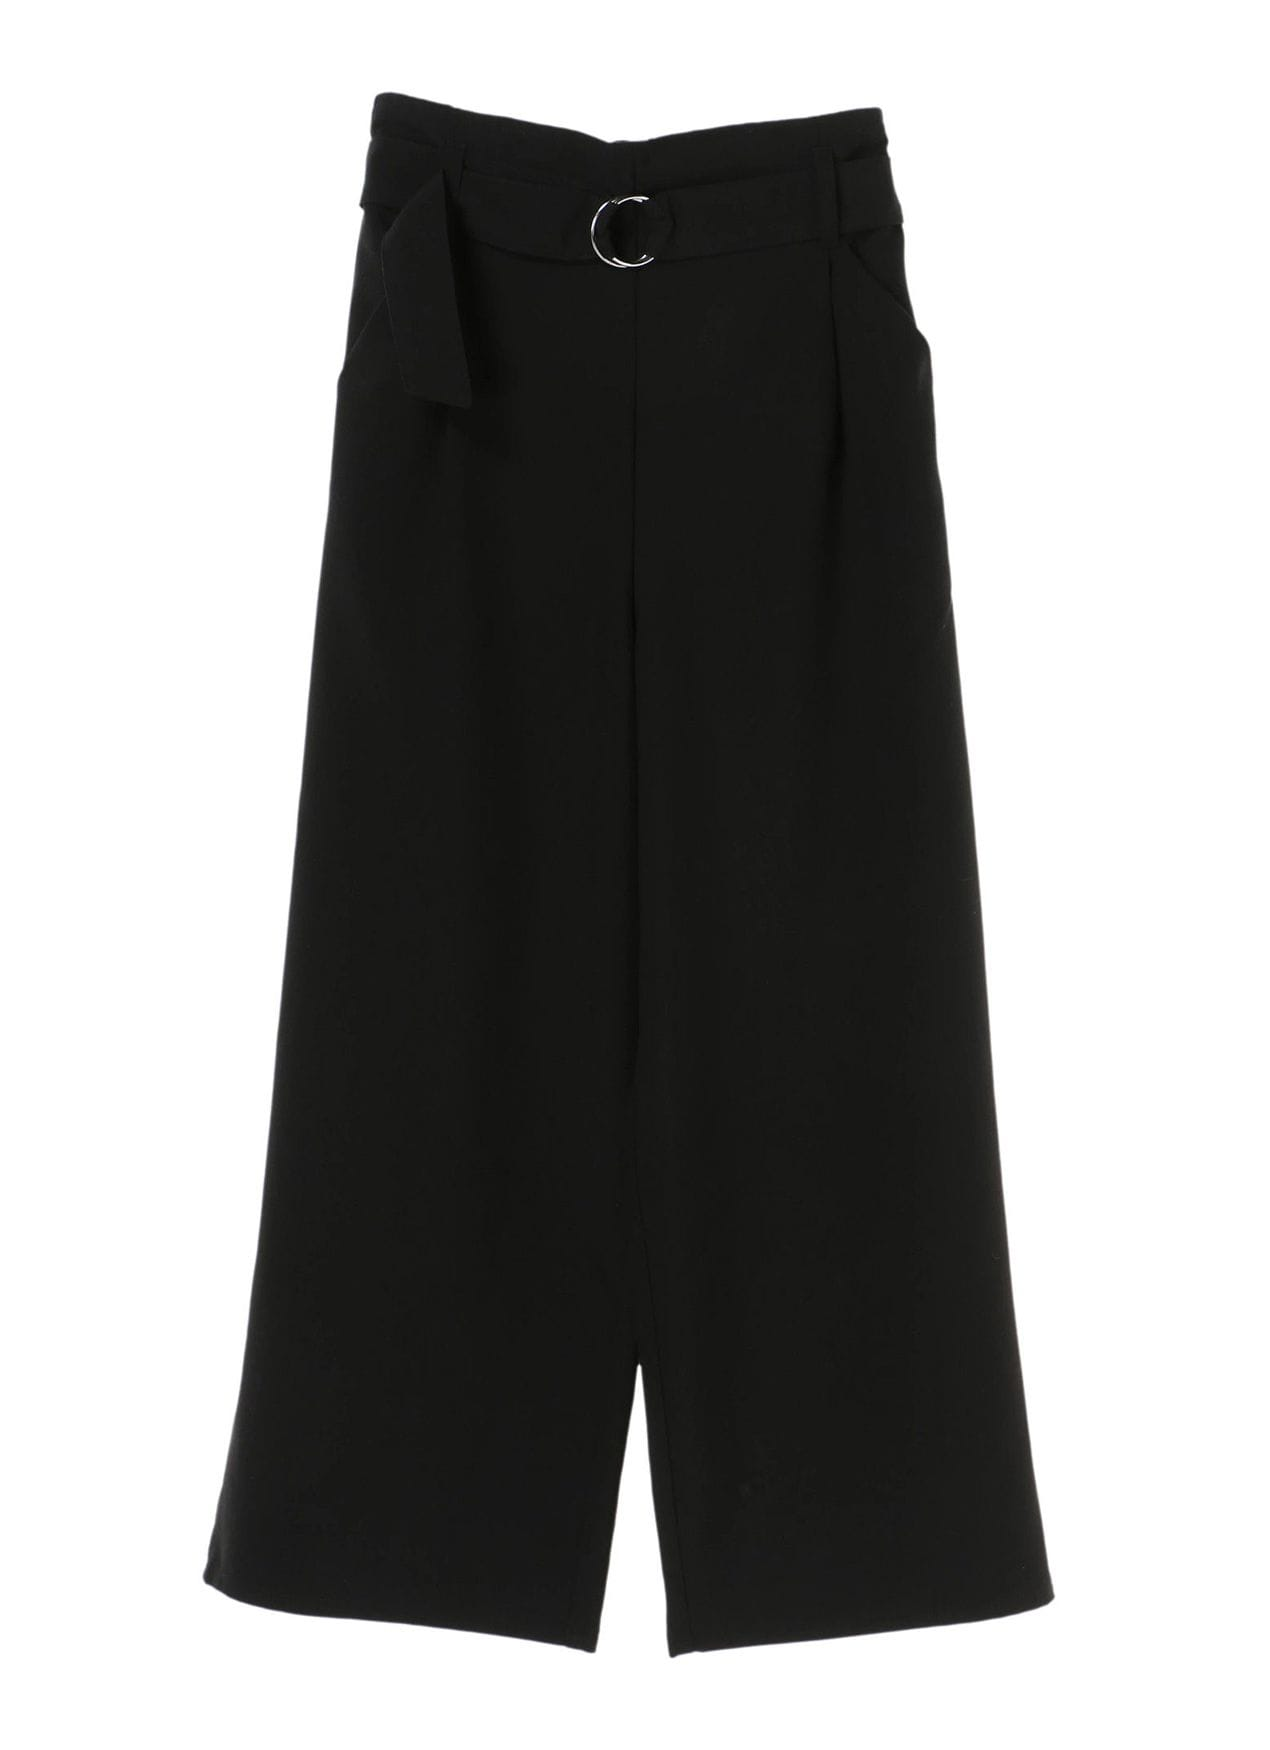 Green Parks Aran Pants - Black